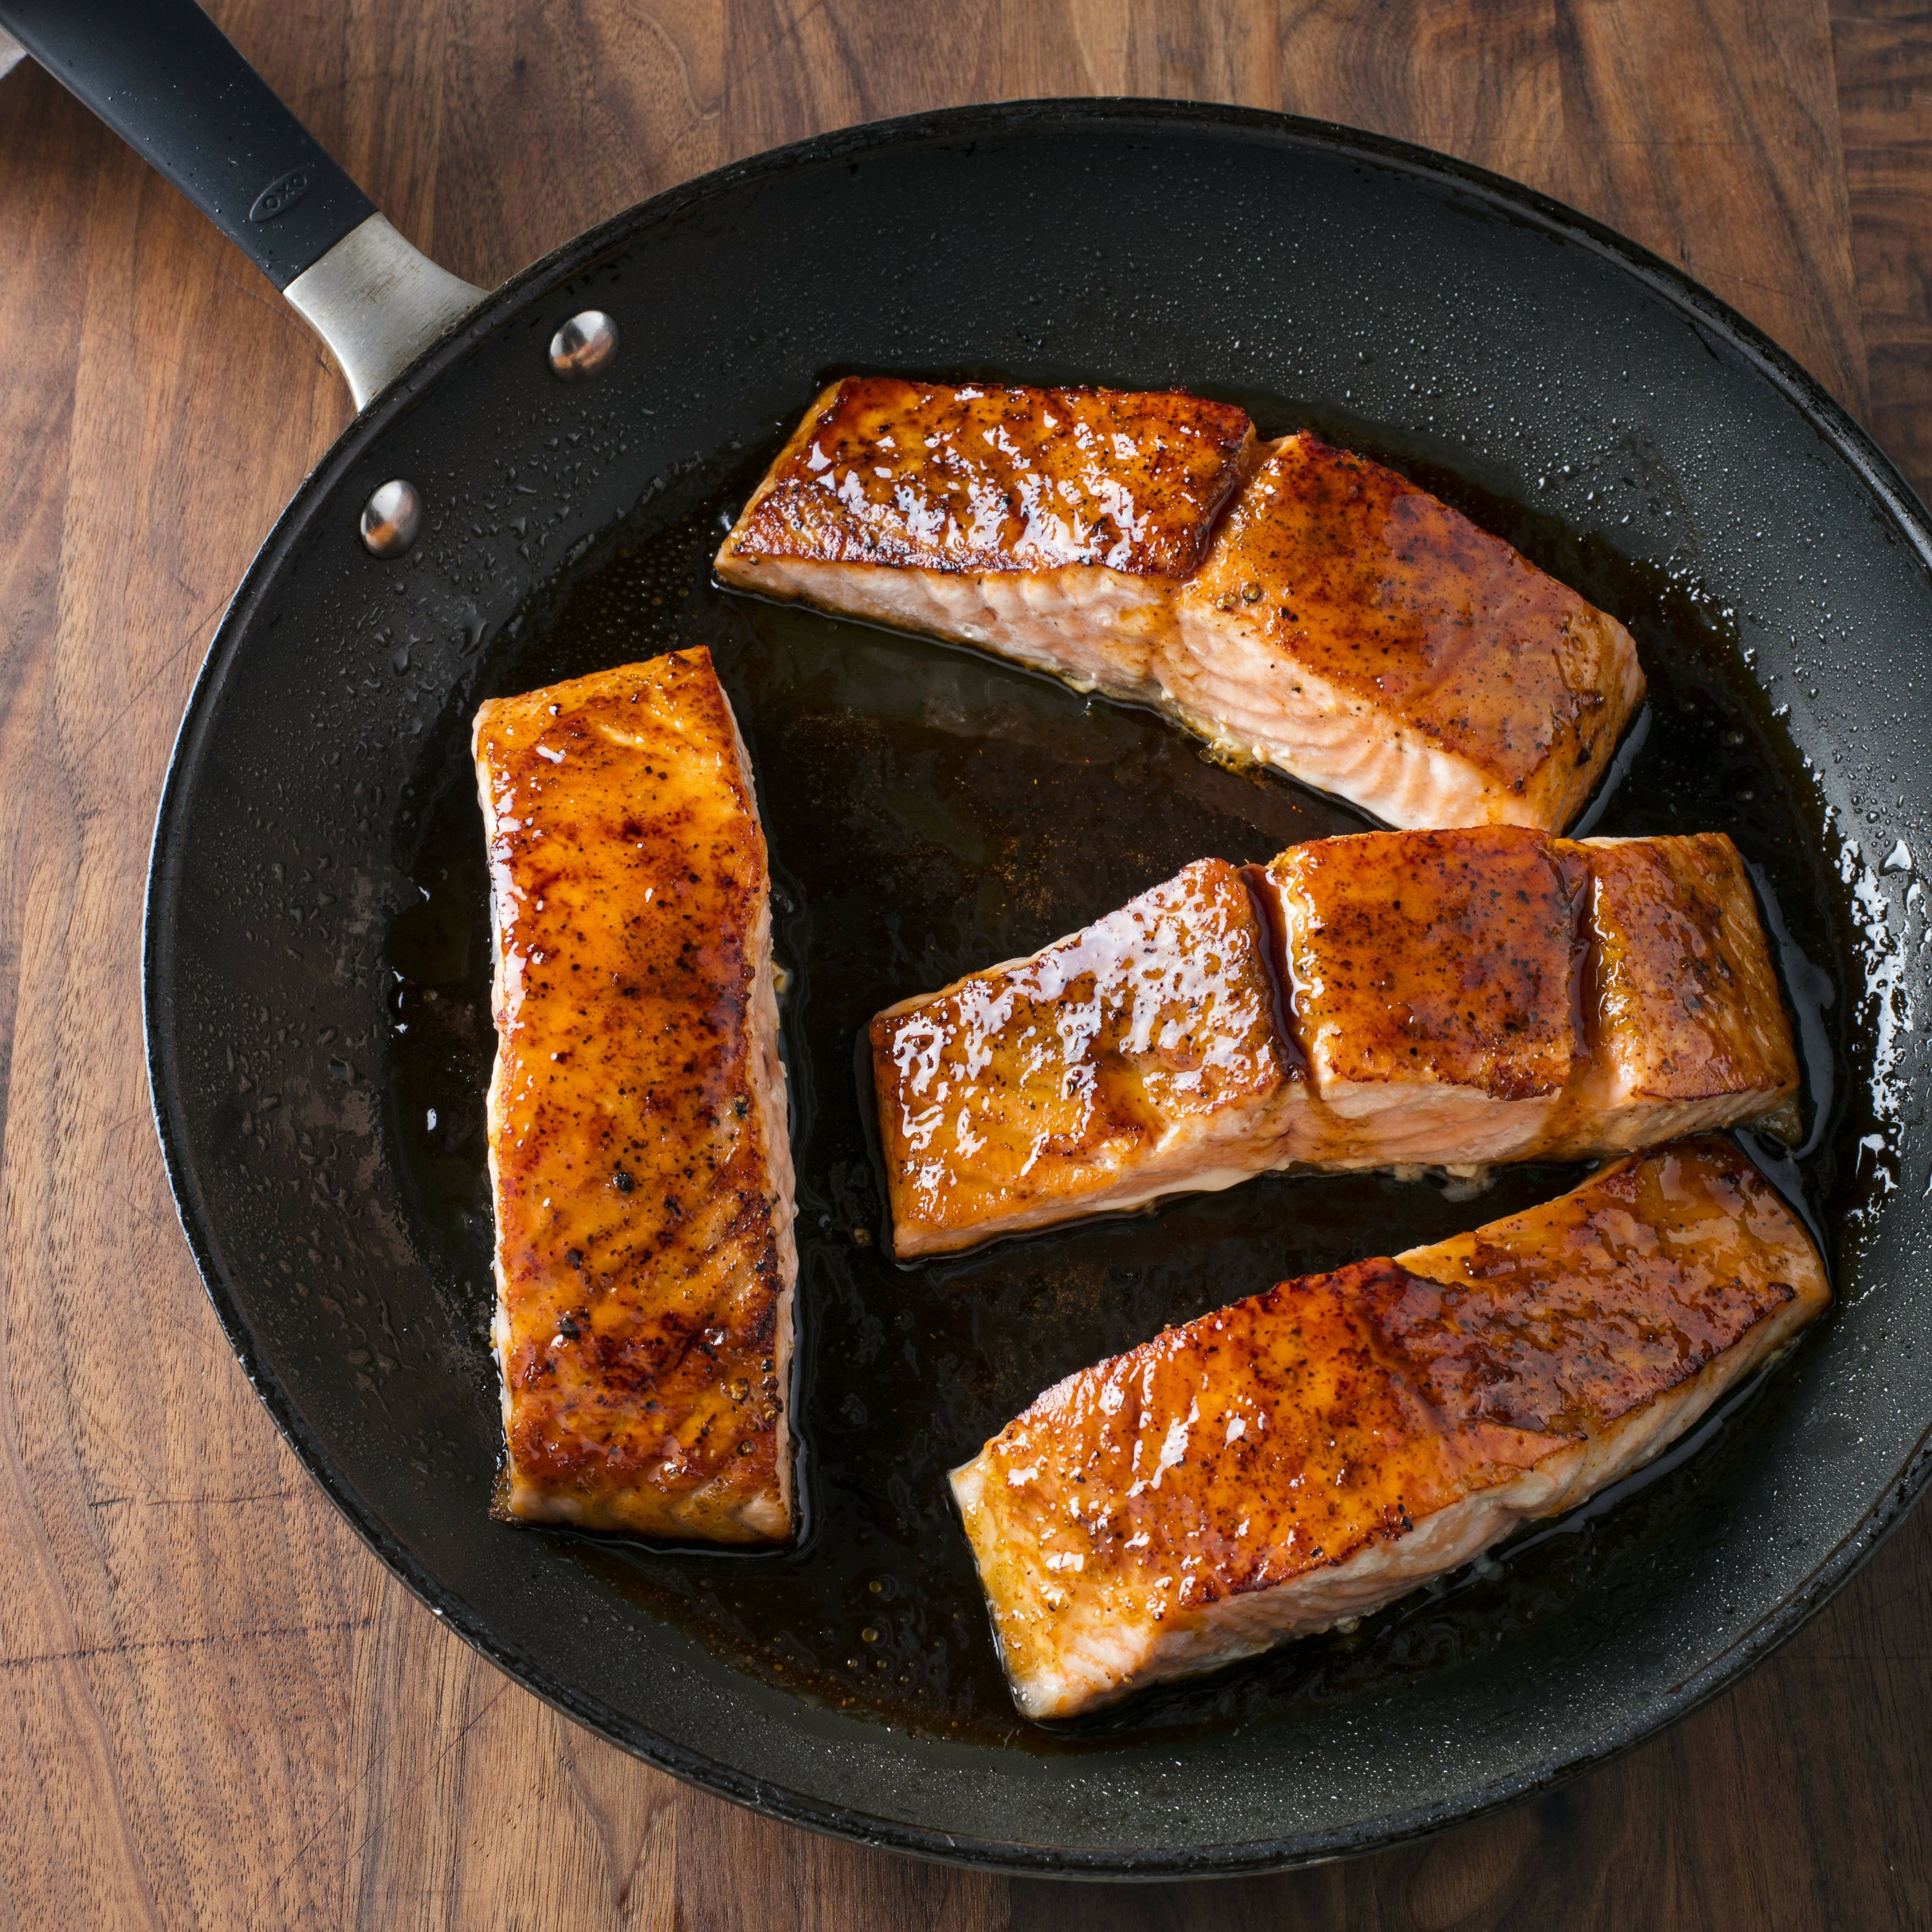 Pair a roasted salmon with a spiced-up honey-lime glaze